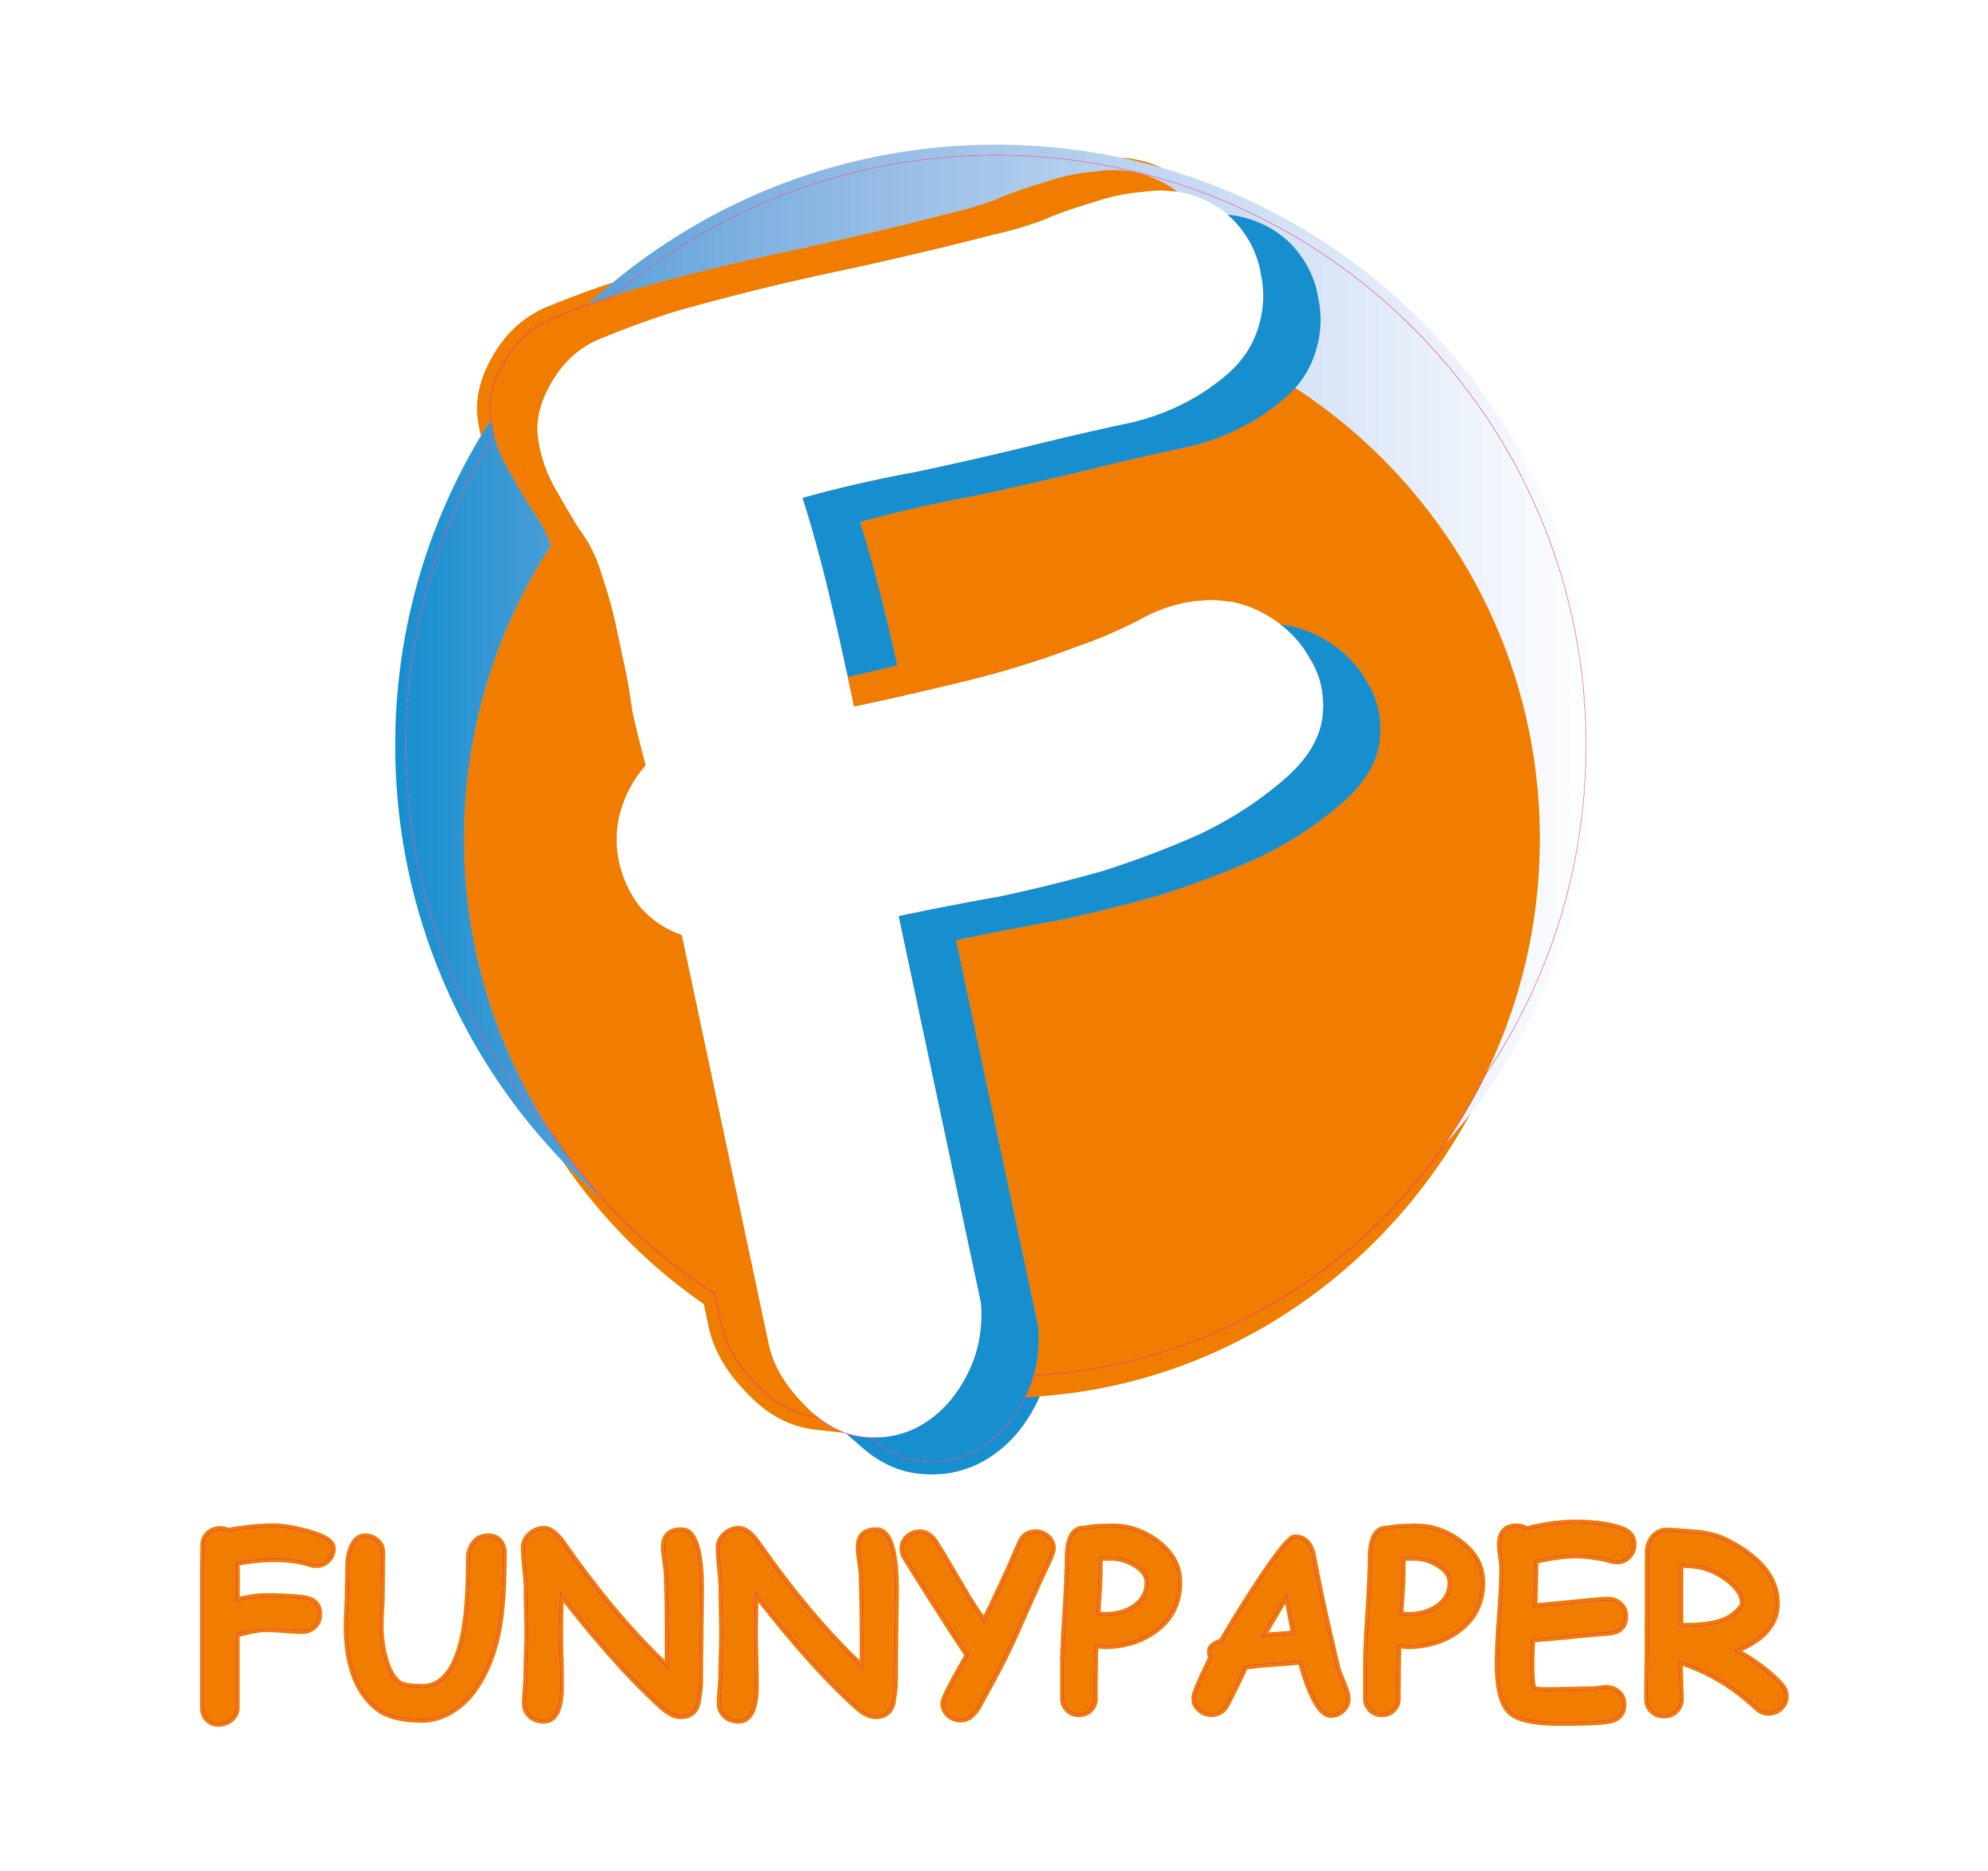 Funny Paper